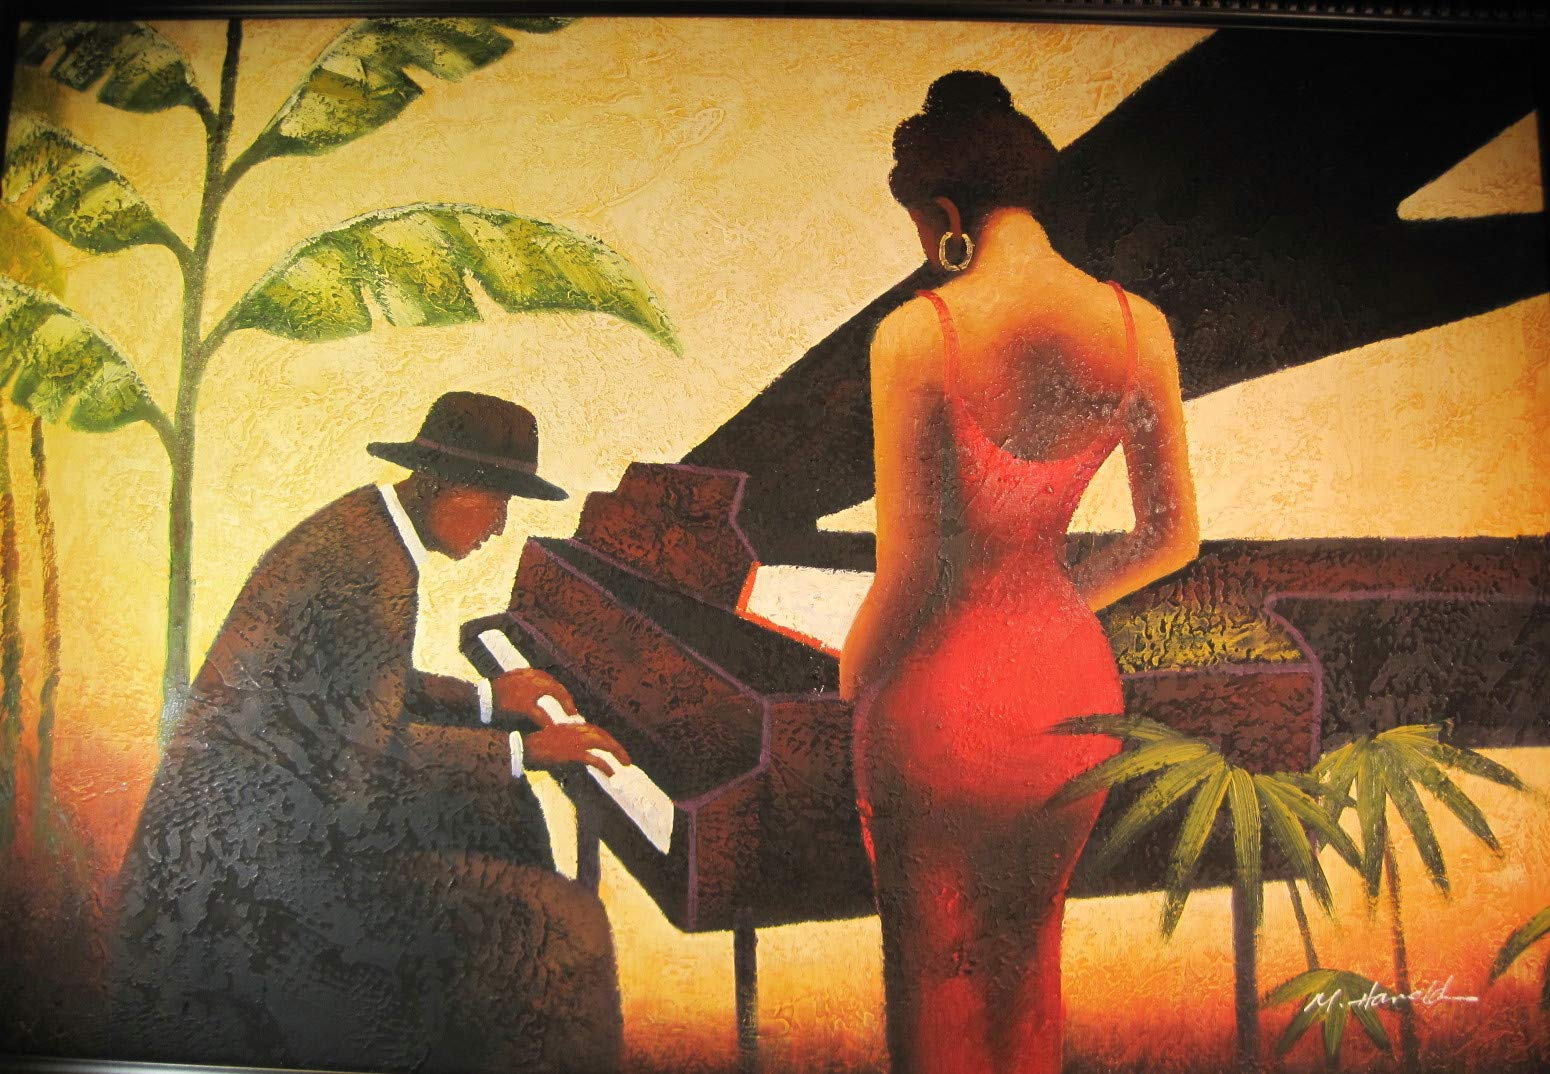 Jazz Pianist & Singer on Canvas Giclee' Painting, M Harold (Artist) 36 x 24 Inches (Painting), 42.5 x 30.5 Inches (Overall) by Jazz Pianist & Singer